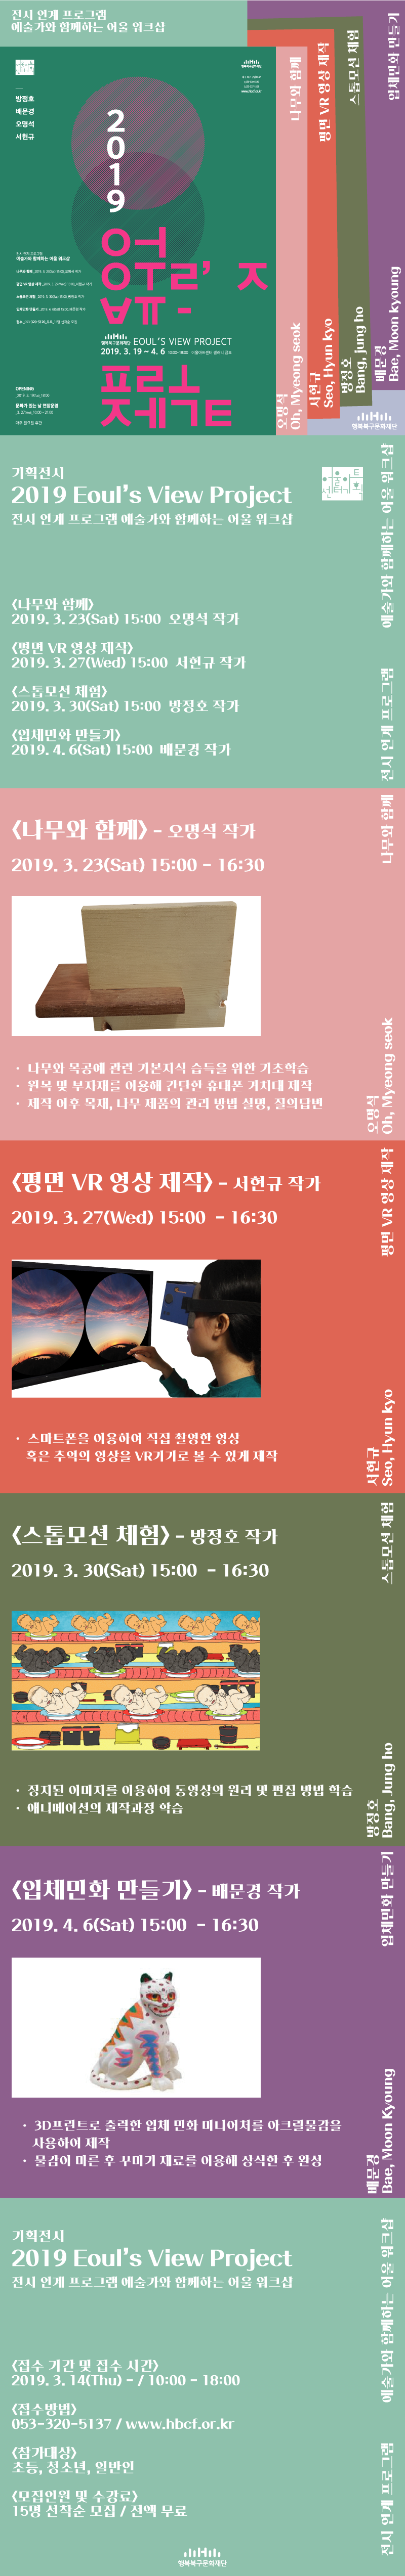 Eoul's-view-project-전시연계프로그램.png